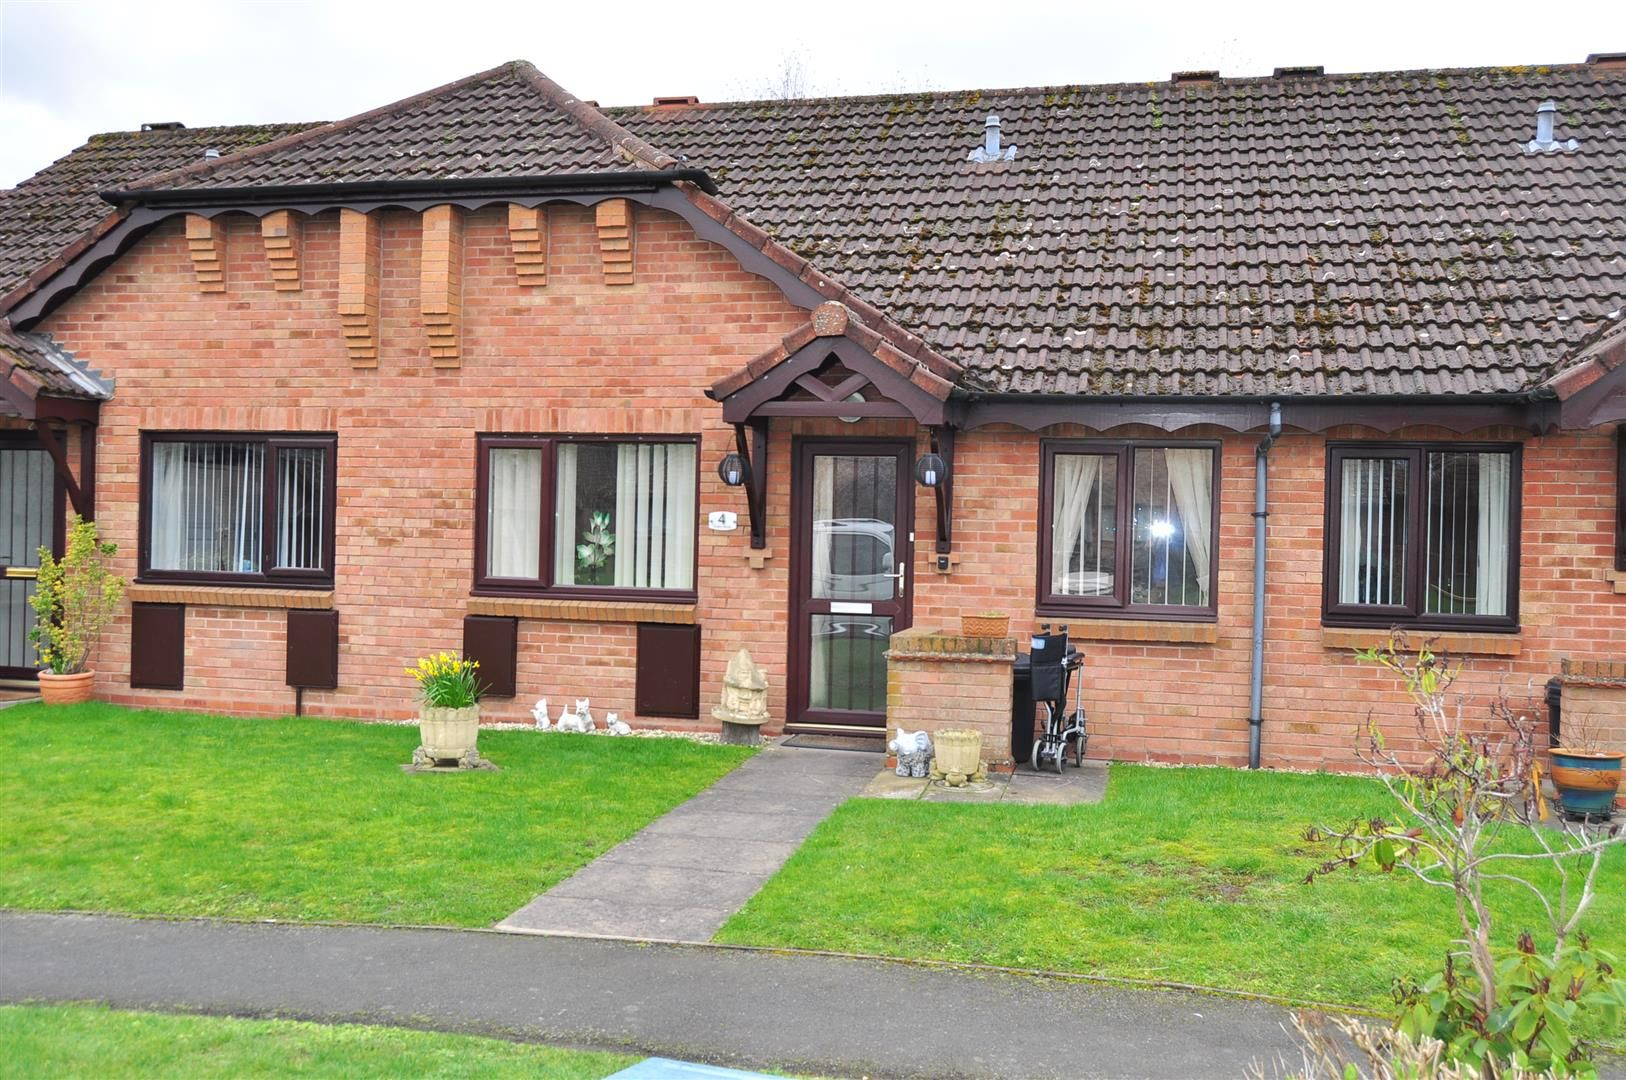 2 bed terraced-bungalow for sale 1